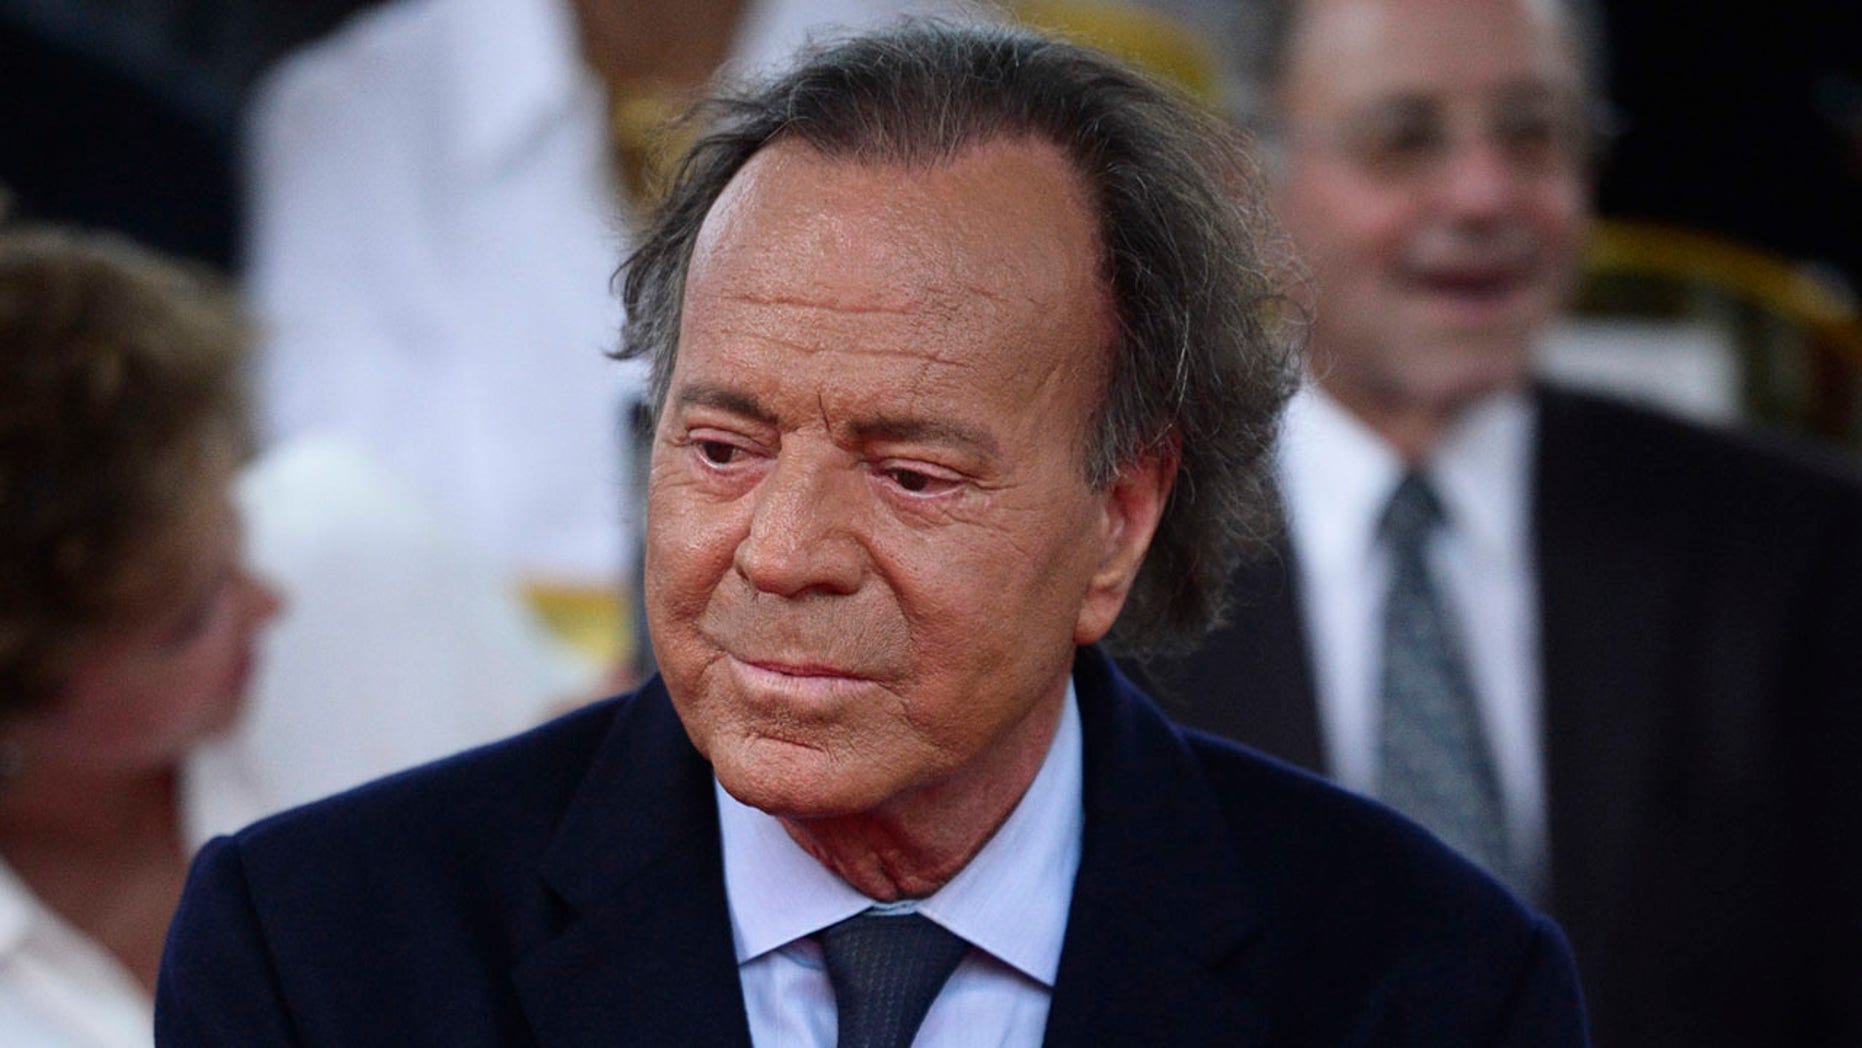 In this September 2016 file photo, Spanish singer Julio Iglesias attends his star unveiling ceremony at the Walk of Fame, in San Juan, Puerto Rico. (AP Photo/Carlos Giusti, File)